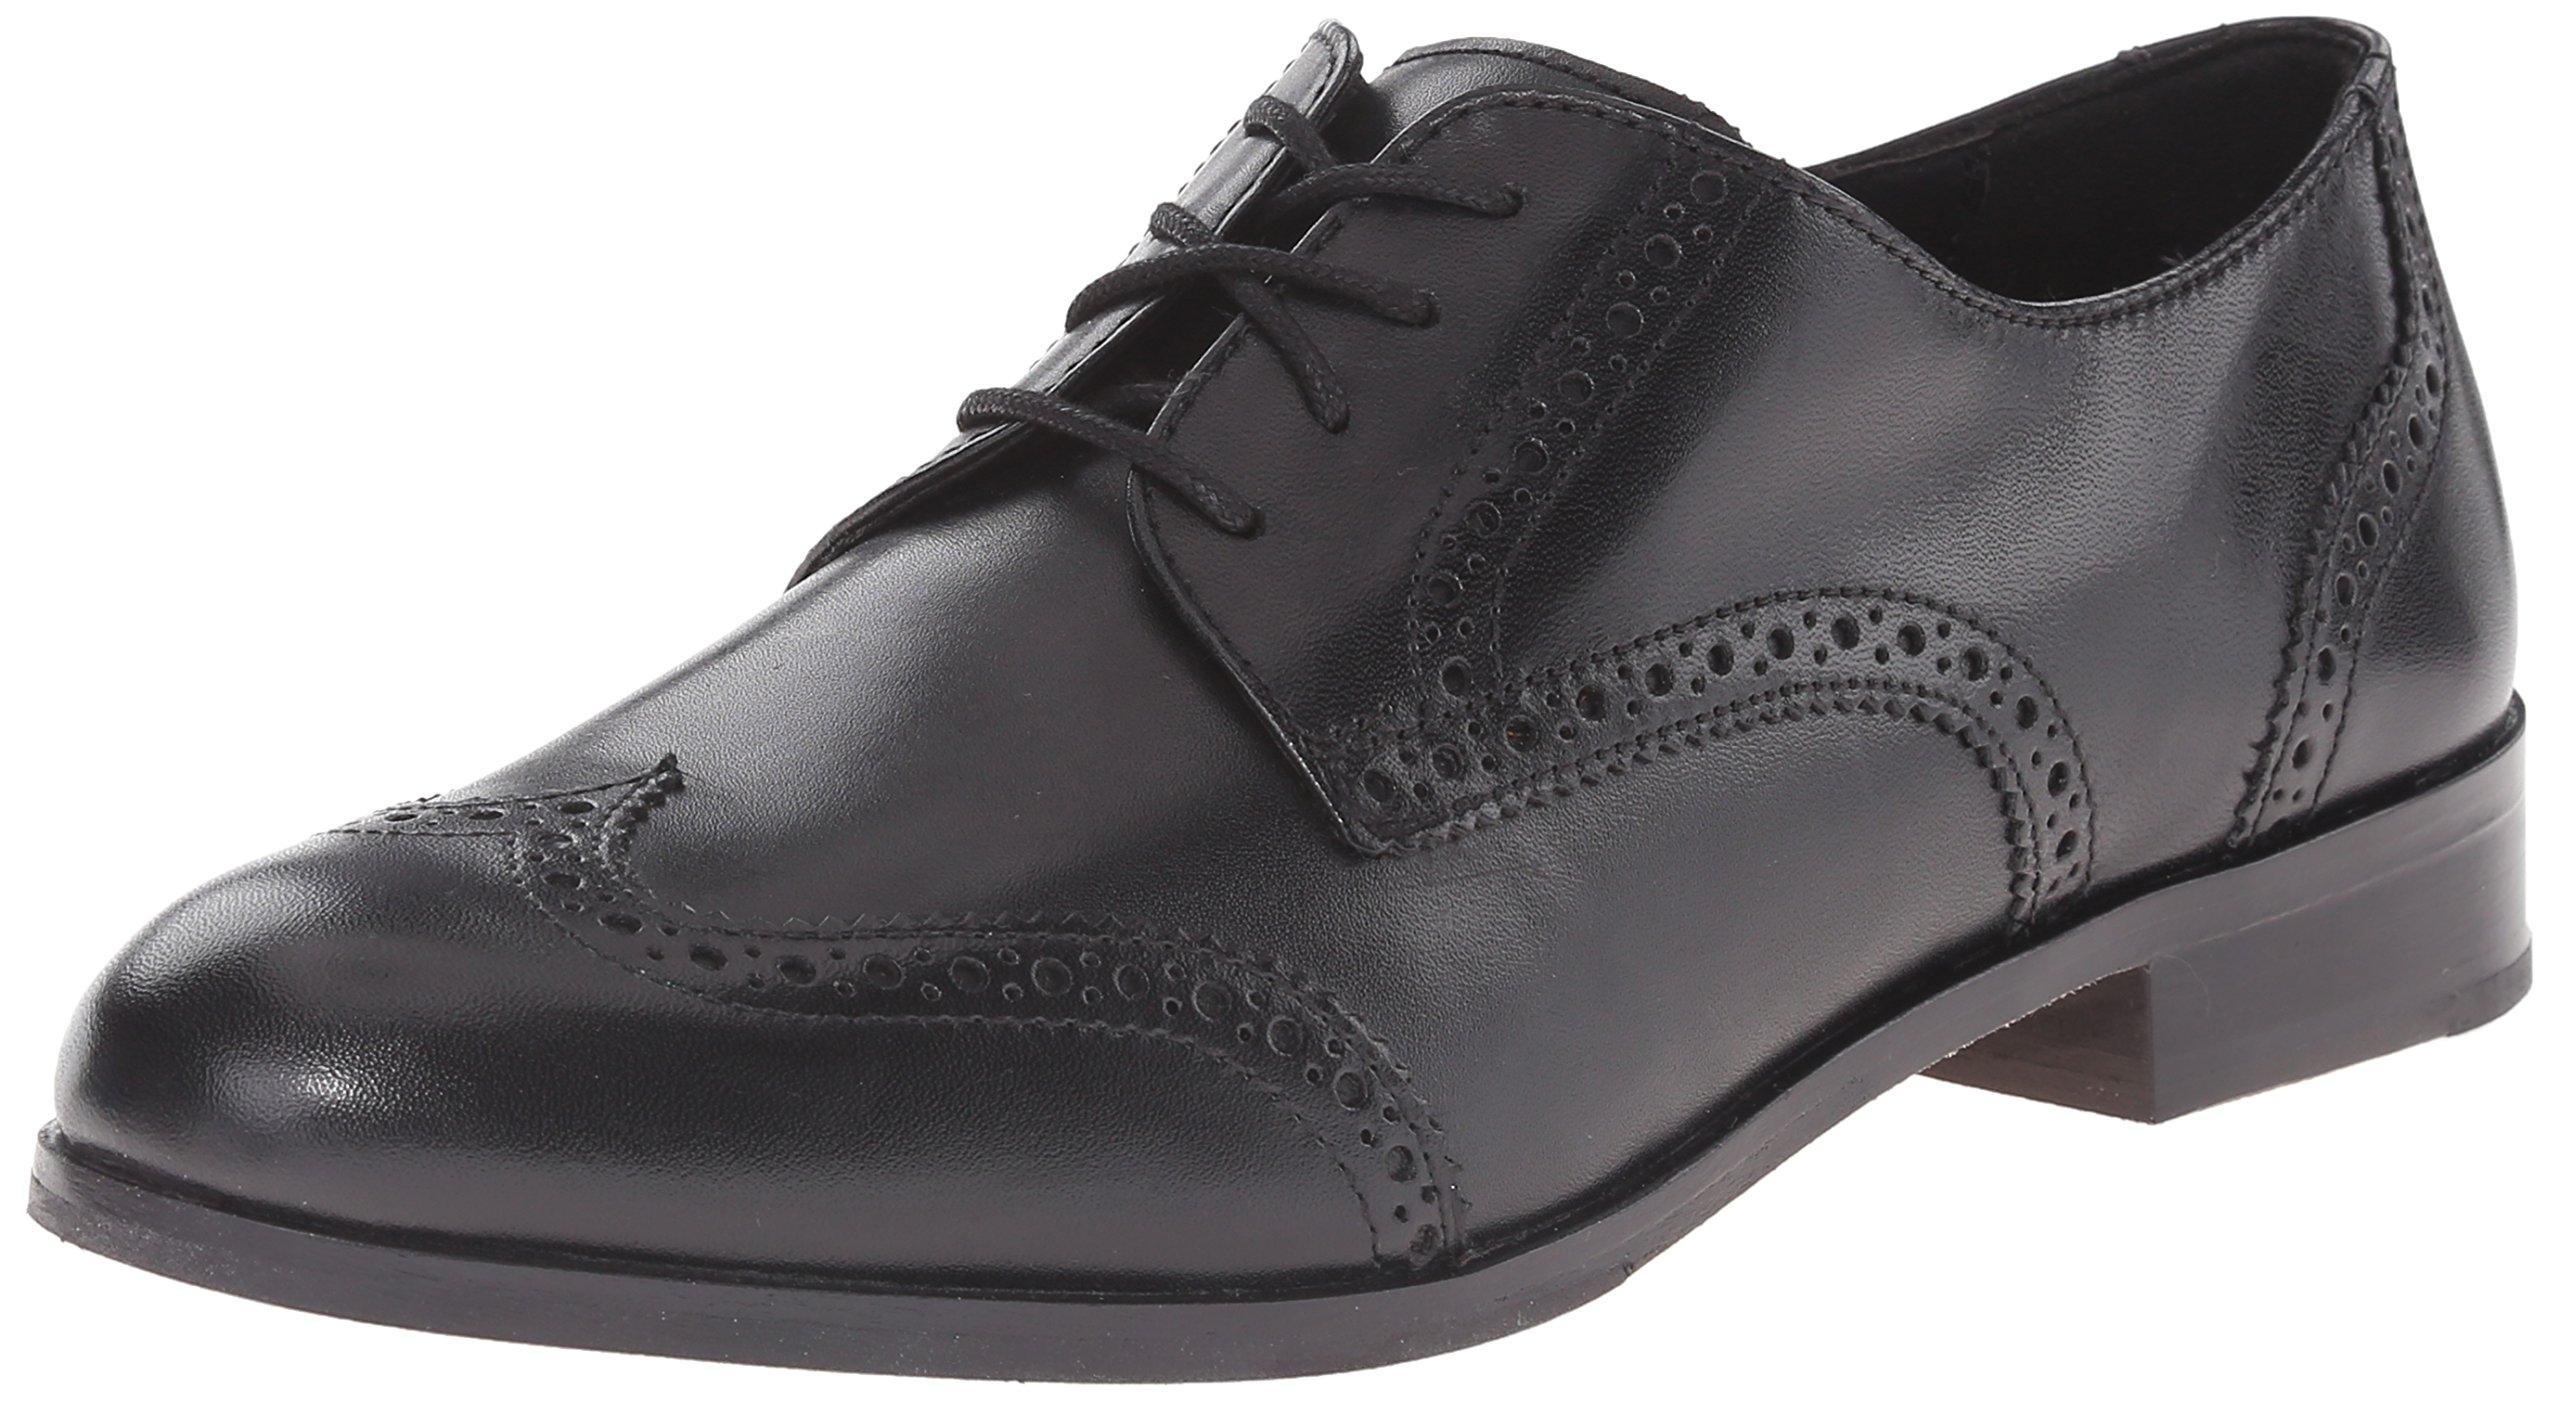 Cole Haan Women's Jagger Weave Oxford Oxford, Black, 8 B US